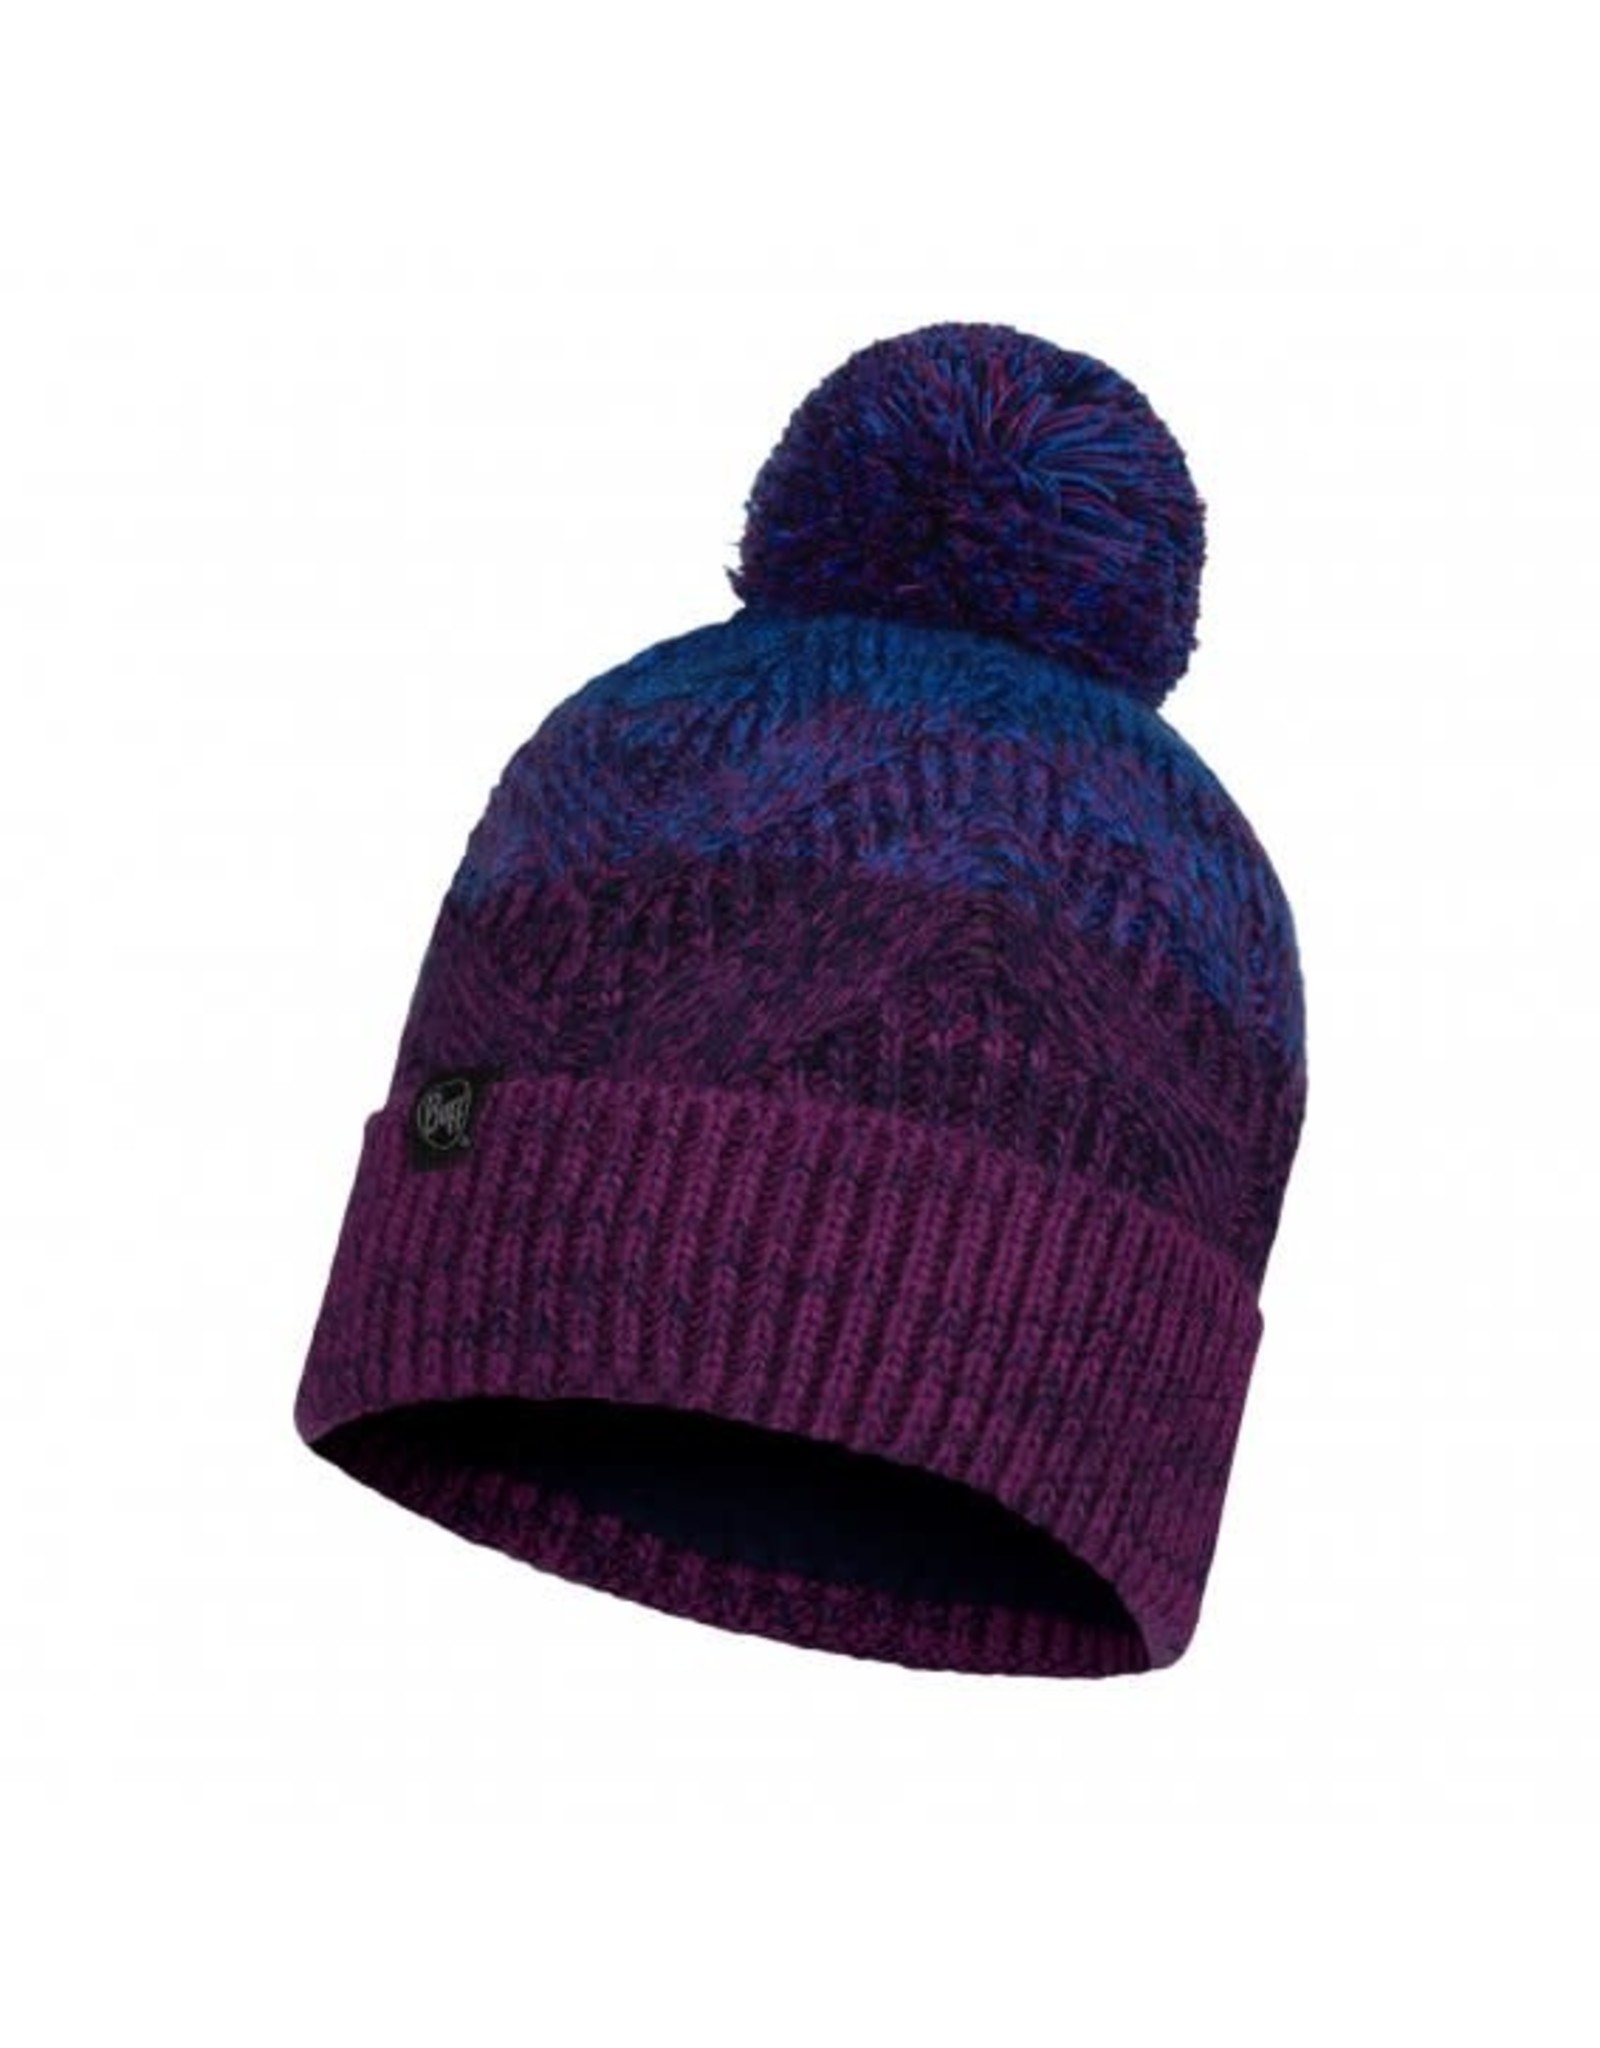 Buff '21, BUFF, Knitted Fleece Hat